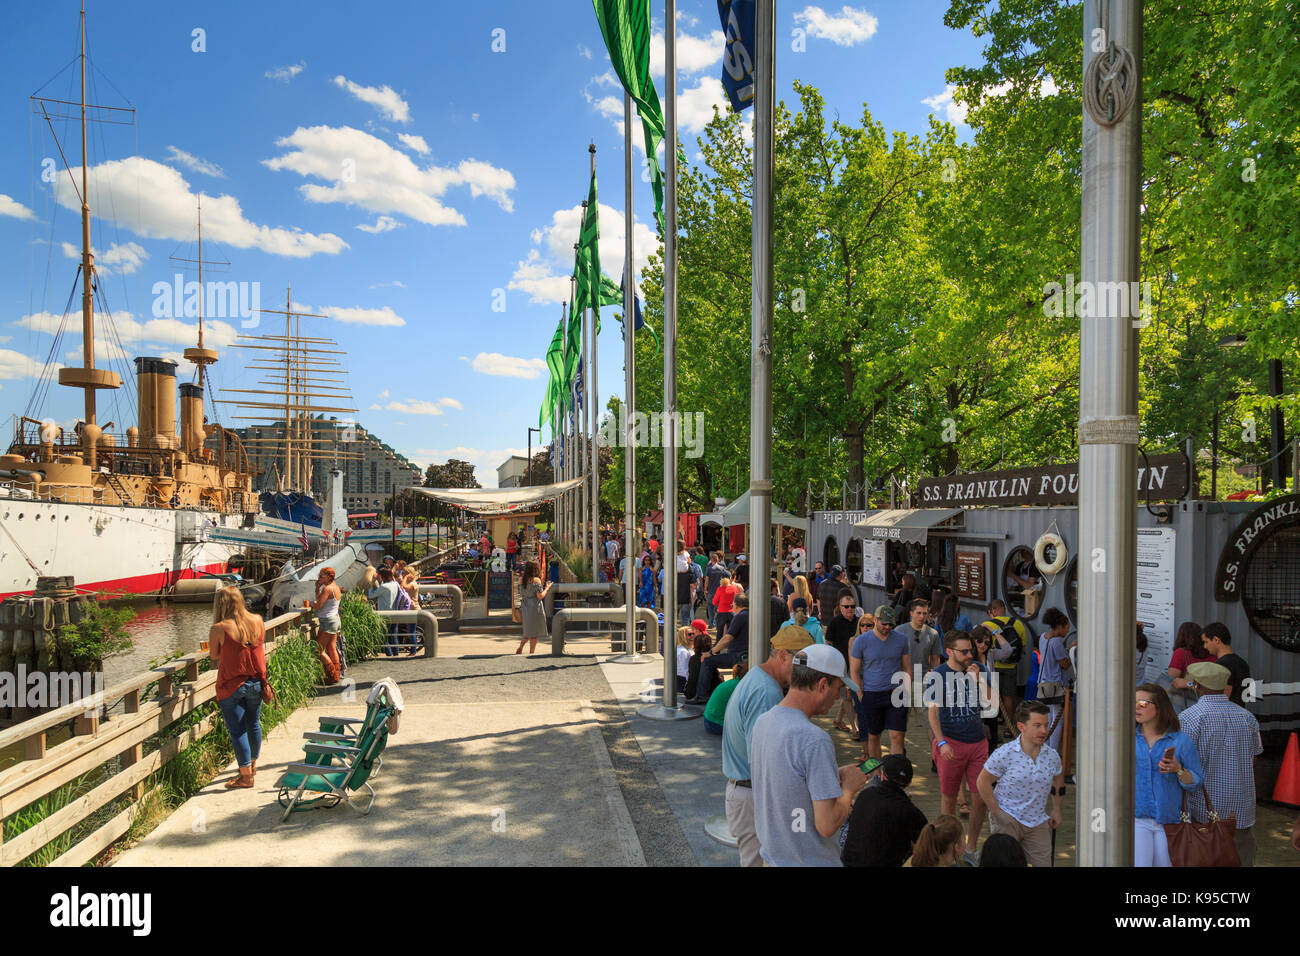 Recycled Shipping Containers made into Cafes at Spruce Harbor Park, Penns Landing, Philadelphia, USA - Stock Image